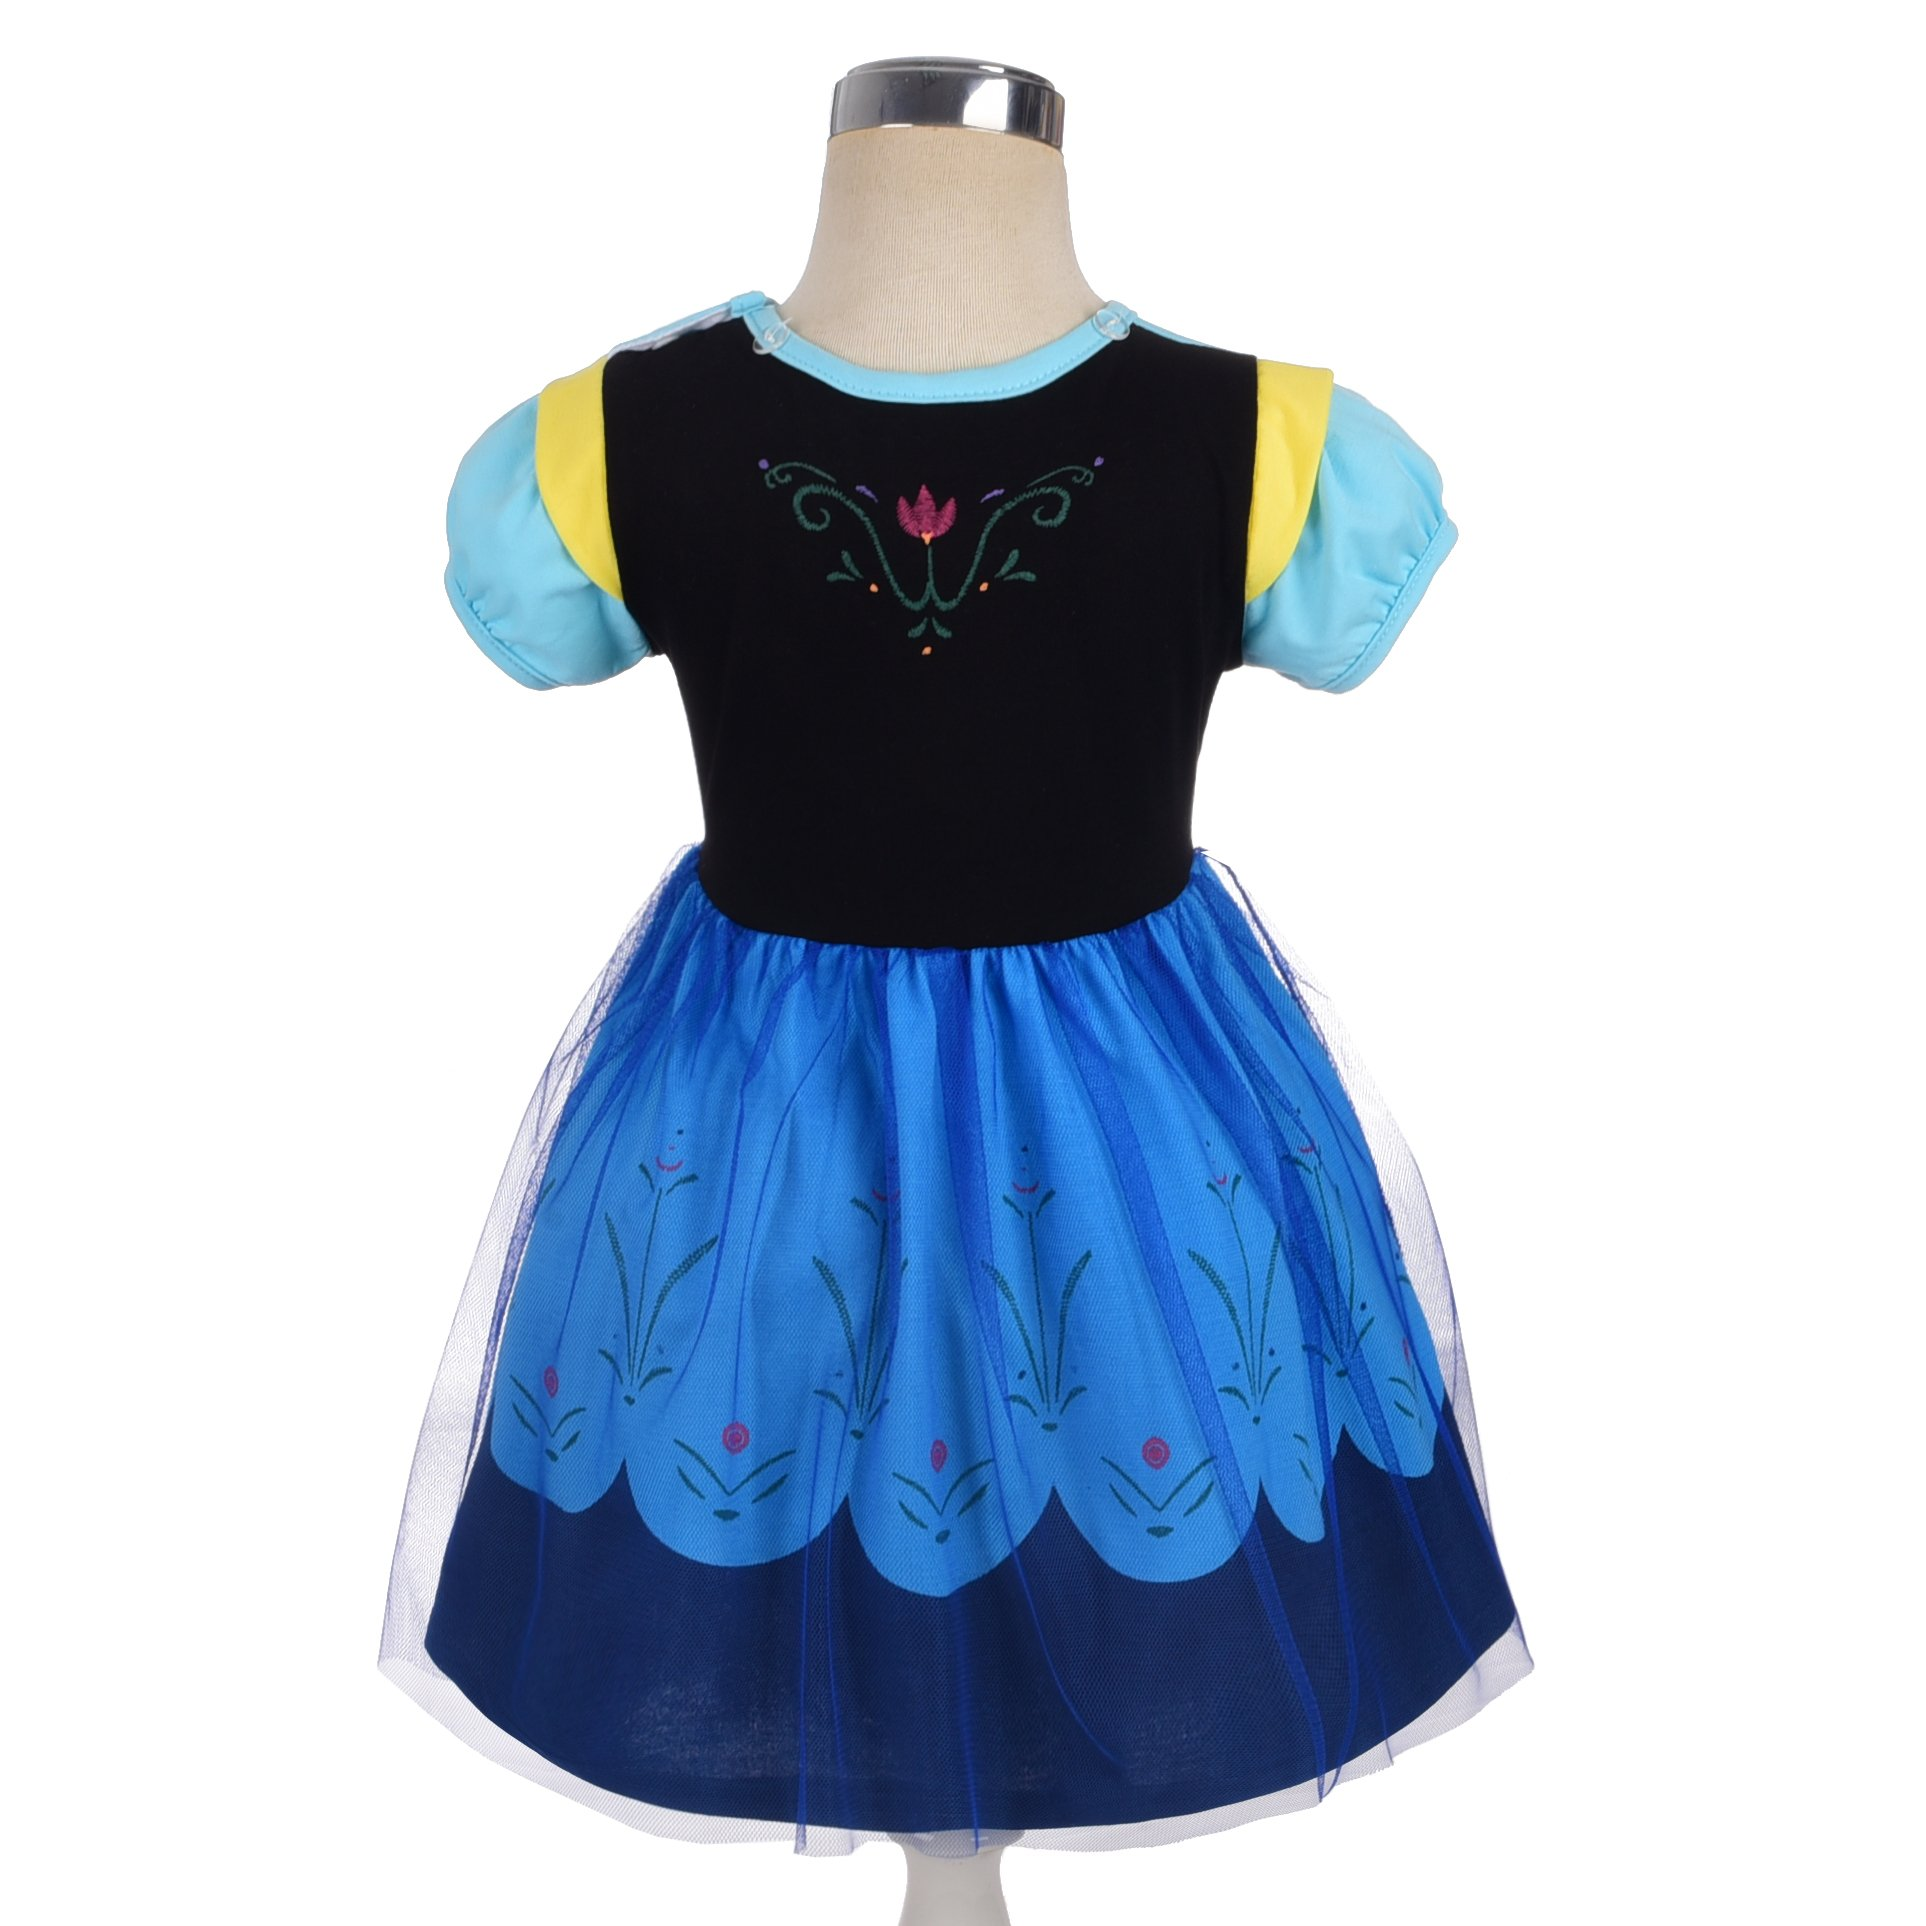 Dressy Daisy Princess Anna Dress for Toddler Girls with Cape Halloween Fancy Party Costume Dress Size 2T by Dressy Daisy (Image #4)